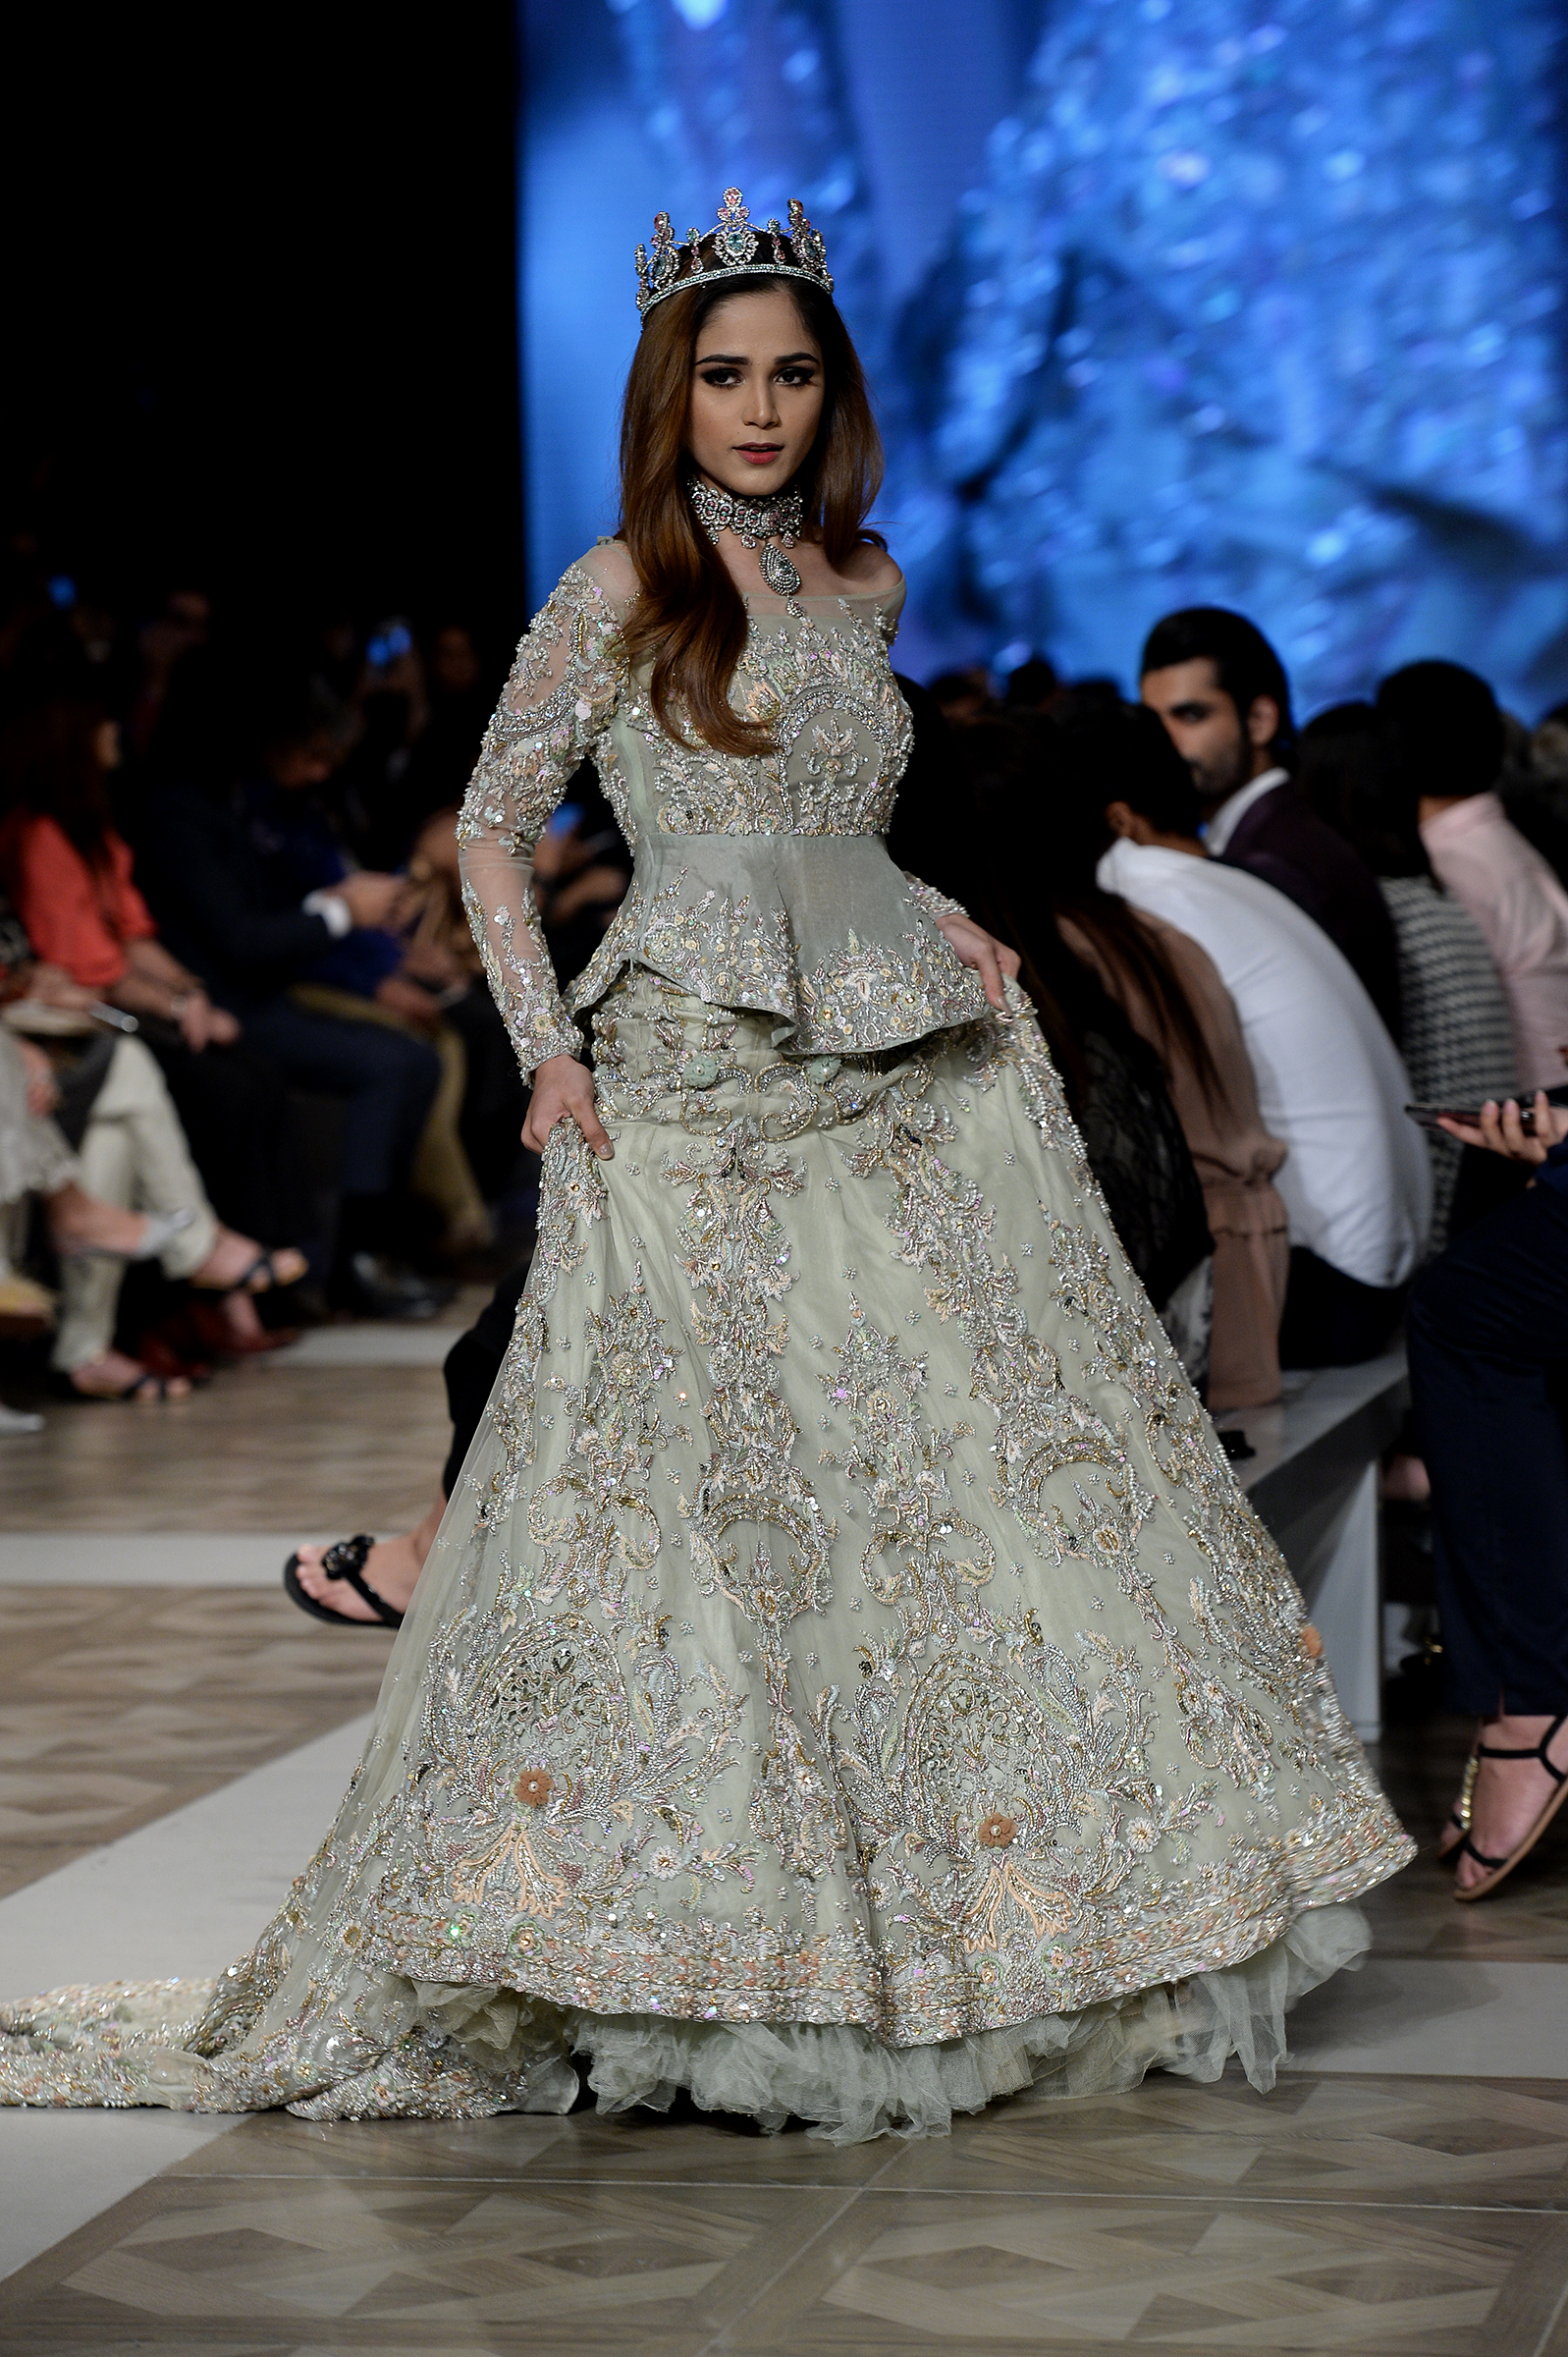 Ahmad Sultan - PFDC L'Oréal Paris Bridal Week 2017 - Photography by Faisal Farooqui and his team at DragonFly